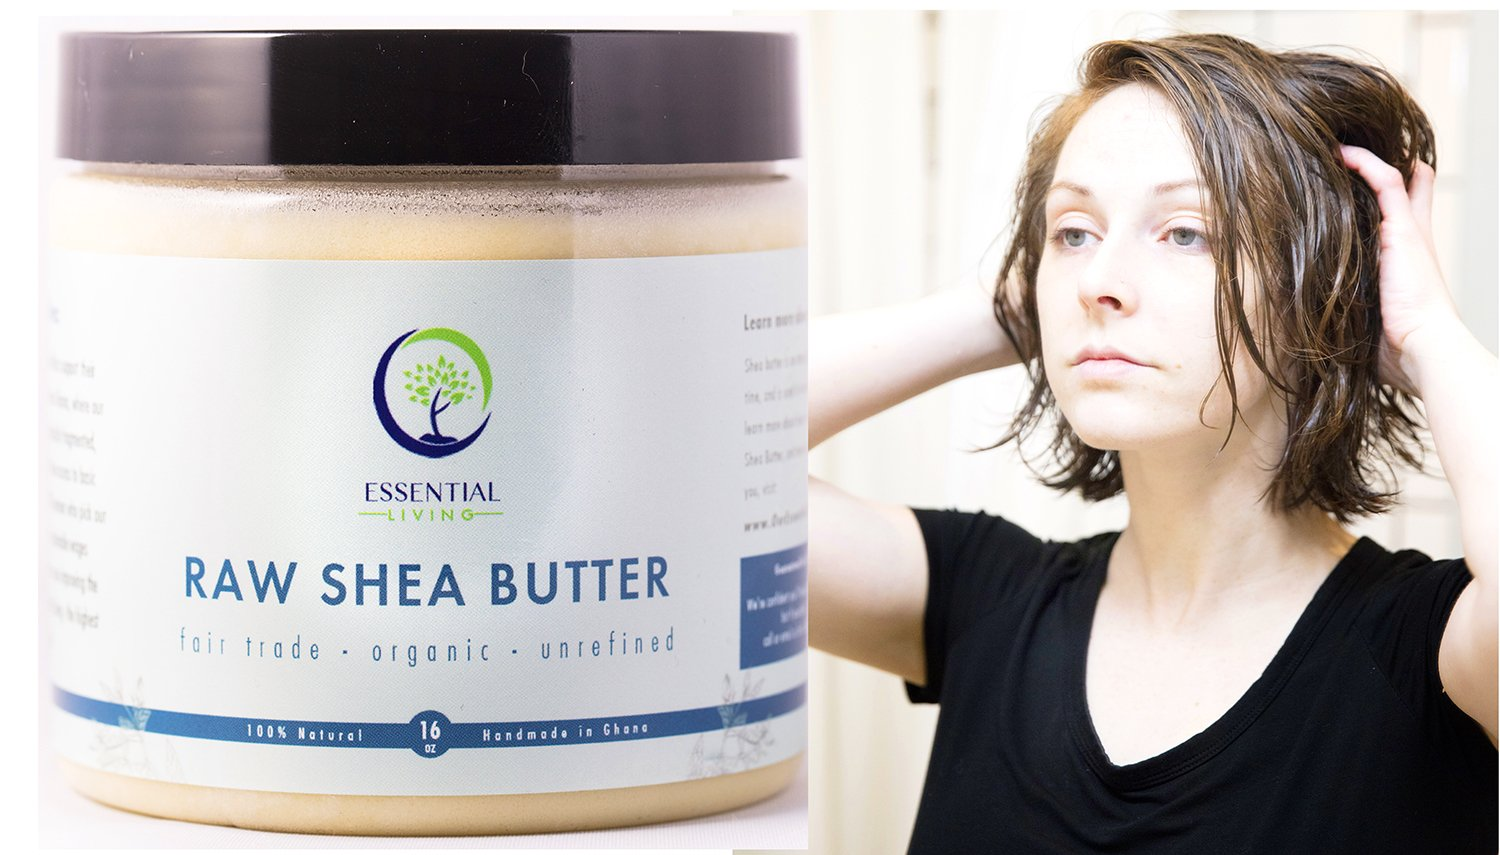 1 Pound Shea Butter: Raw - Organic, Unrefined, Fair Trade Shea Butter for Lotion, Soap, Body Wash, Hand Cream and Baby Eczema Moisture Therapy Essential Living